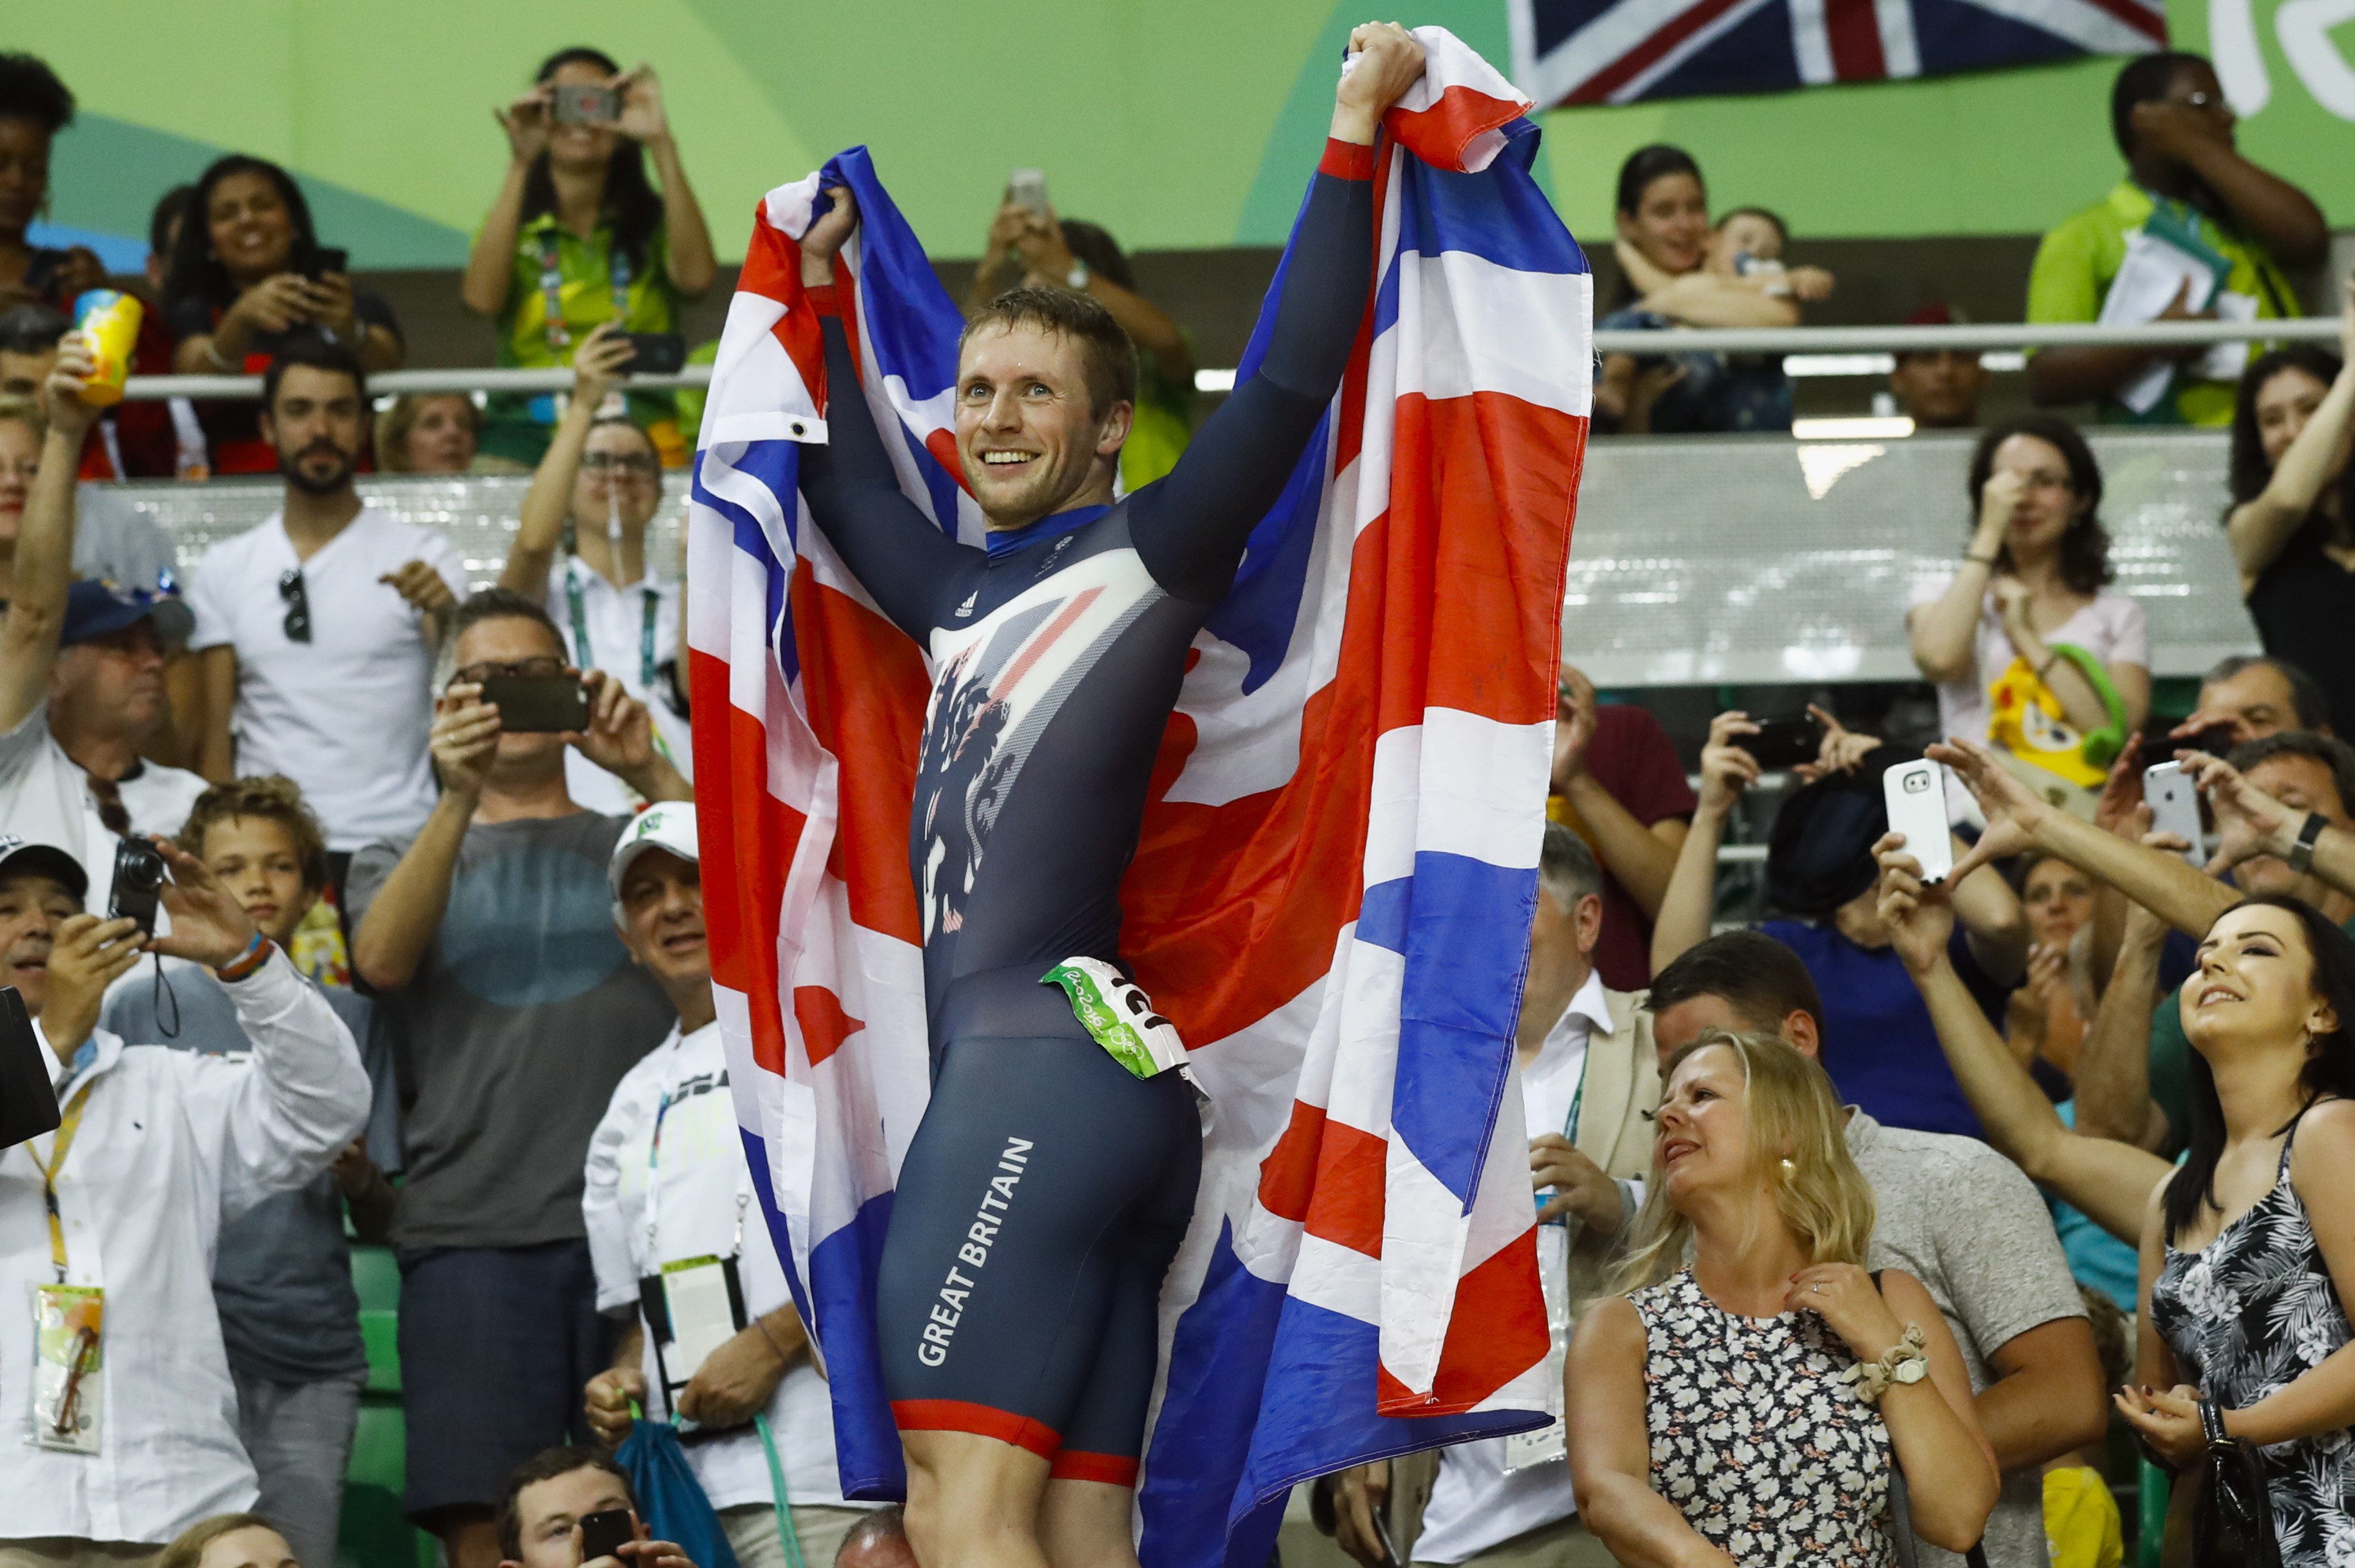 Jason Kenny of Britain celebrates after winning gold in the men's cycling sprint final at the Rio Olympic Velodrome during the 2016 Summer Olympics in Rio de Janeiro, Brazil, Sunday, Aug. 14, 2016. (AP Photo/Patrick Semansky)